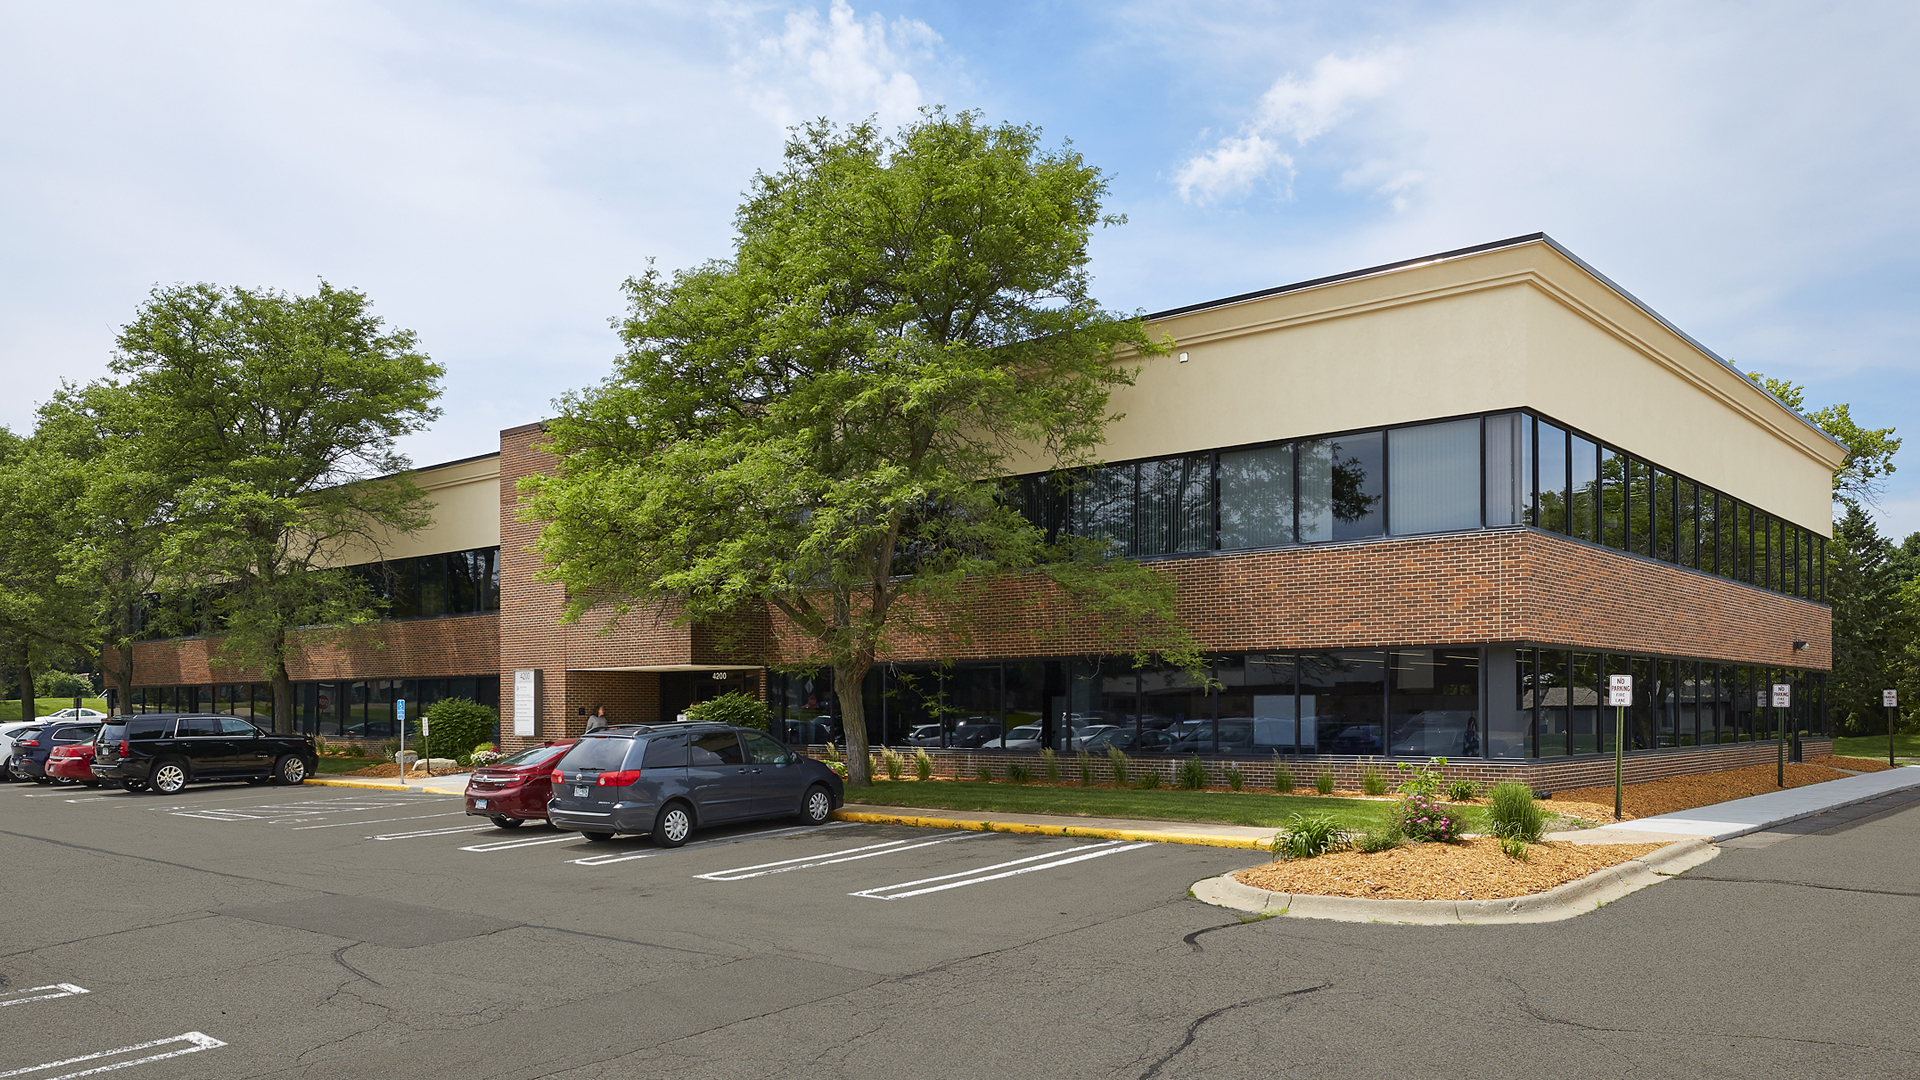 4200 W Old Shakopee Office Building Back Entrance and Surface Parking Lot